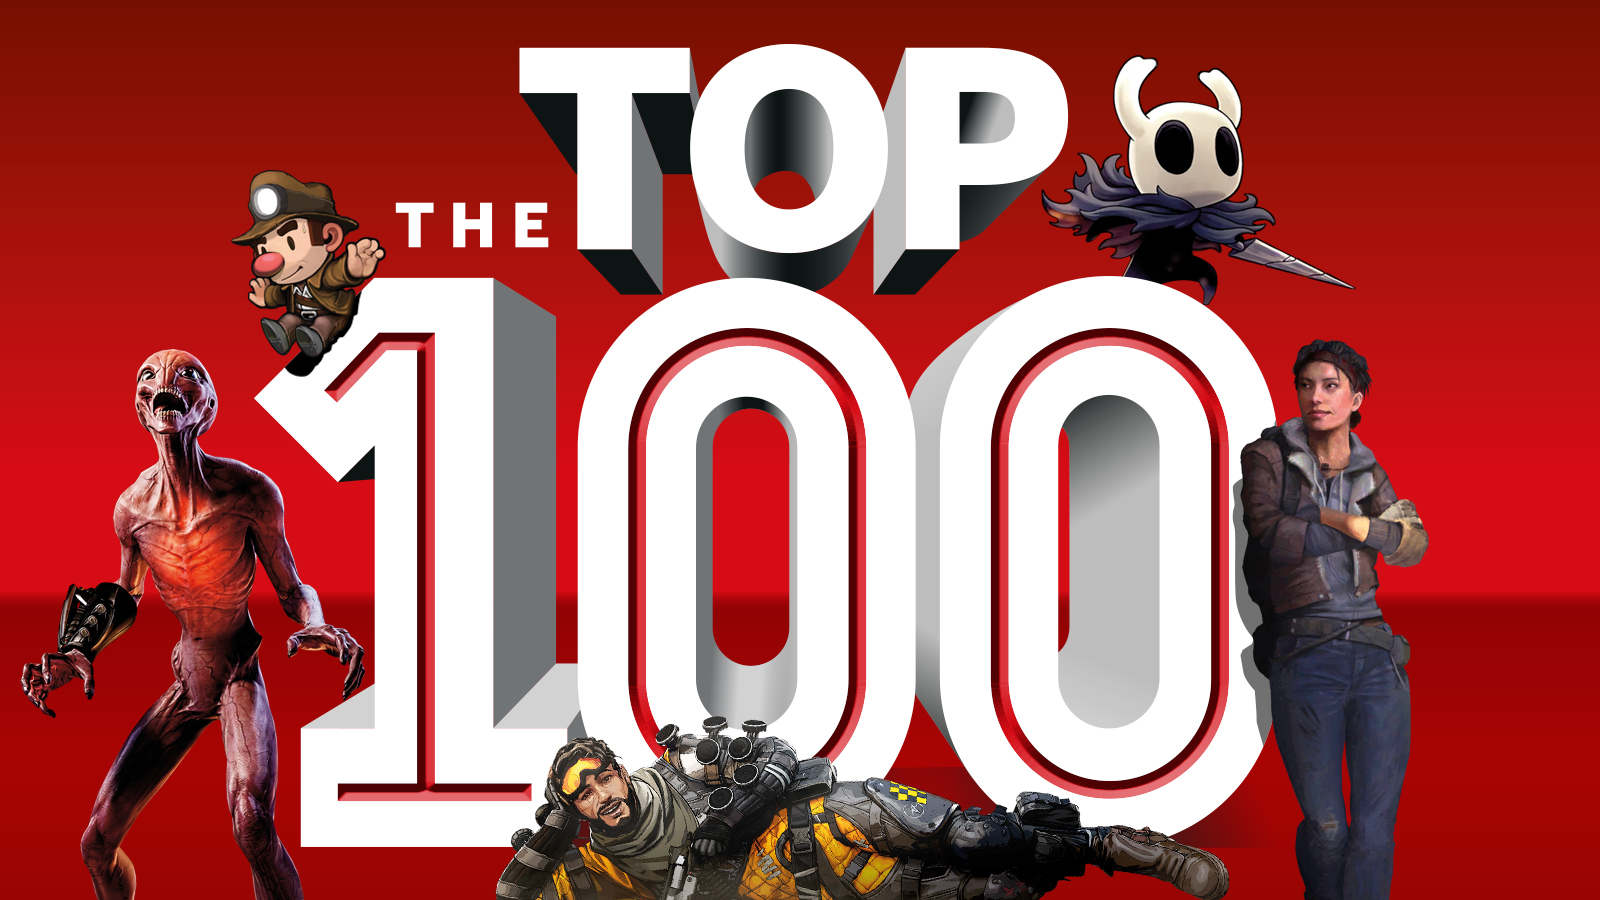 The PC Gamer Top 100